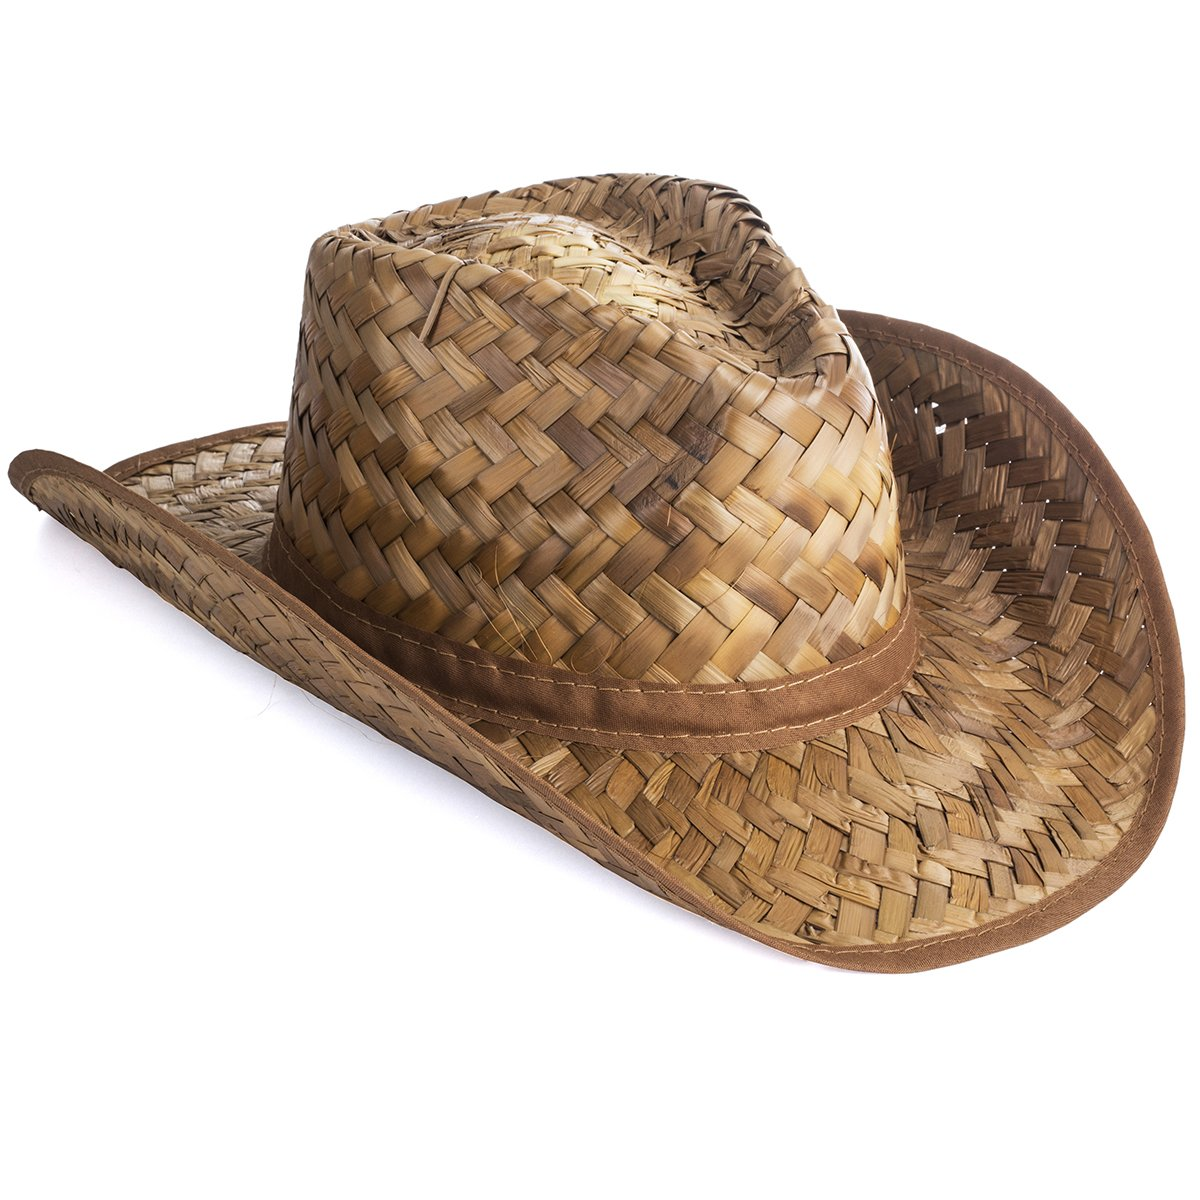 74aed285d2a Get Quotations · Tan Woven Straw Rolled Cowboy Hat by U.S. Toy